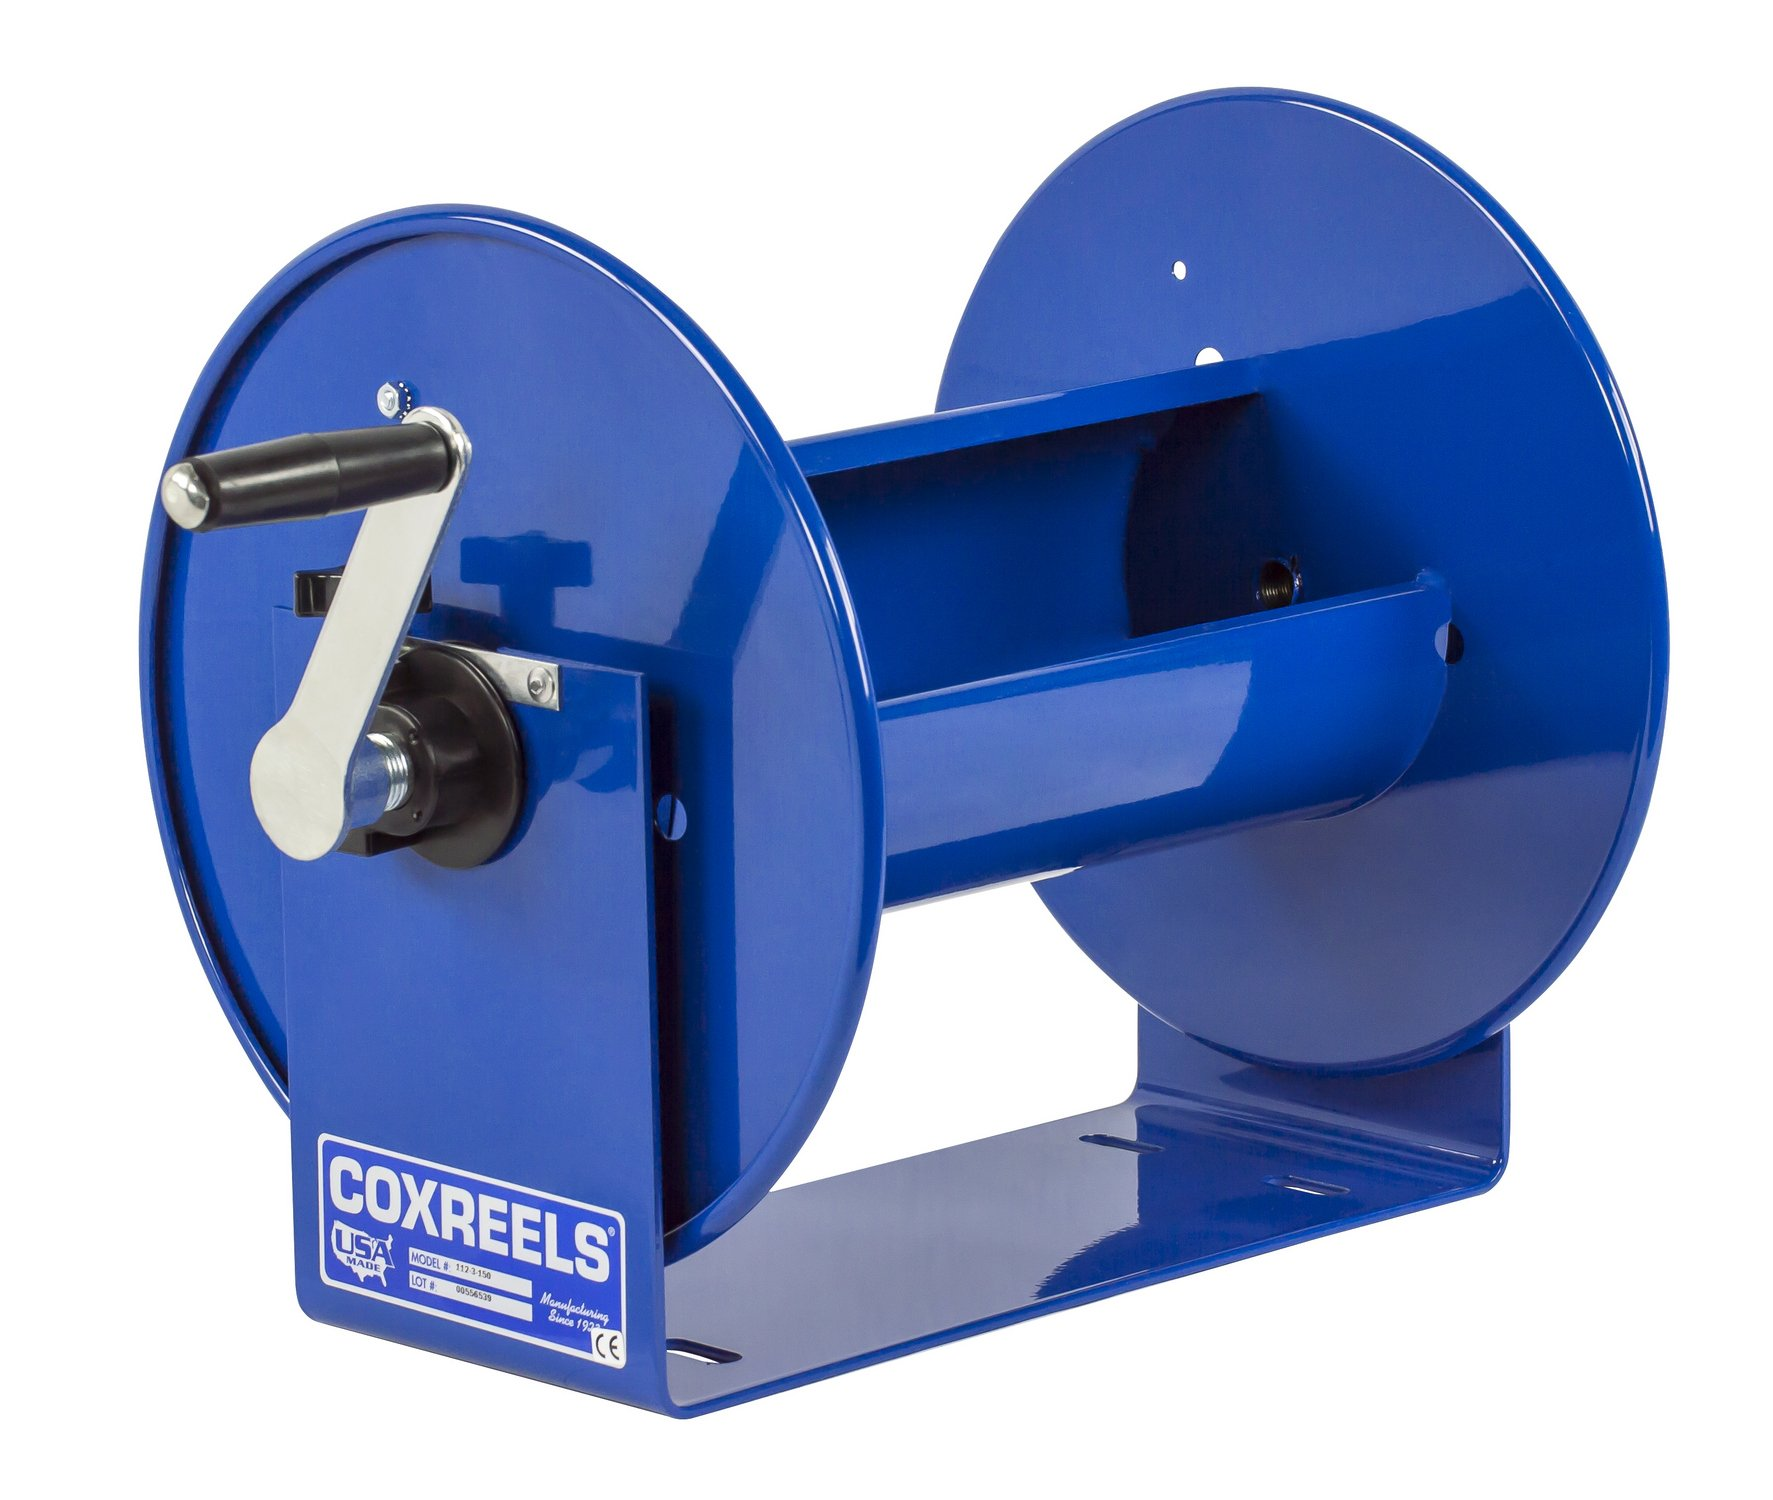 Coxreels 117-3-400 Compact Hand Crank Hose Reel, 4,000 PSI, Holds 3/8'' x 400' Length Hose, Hose Not Included